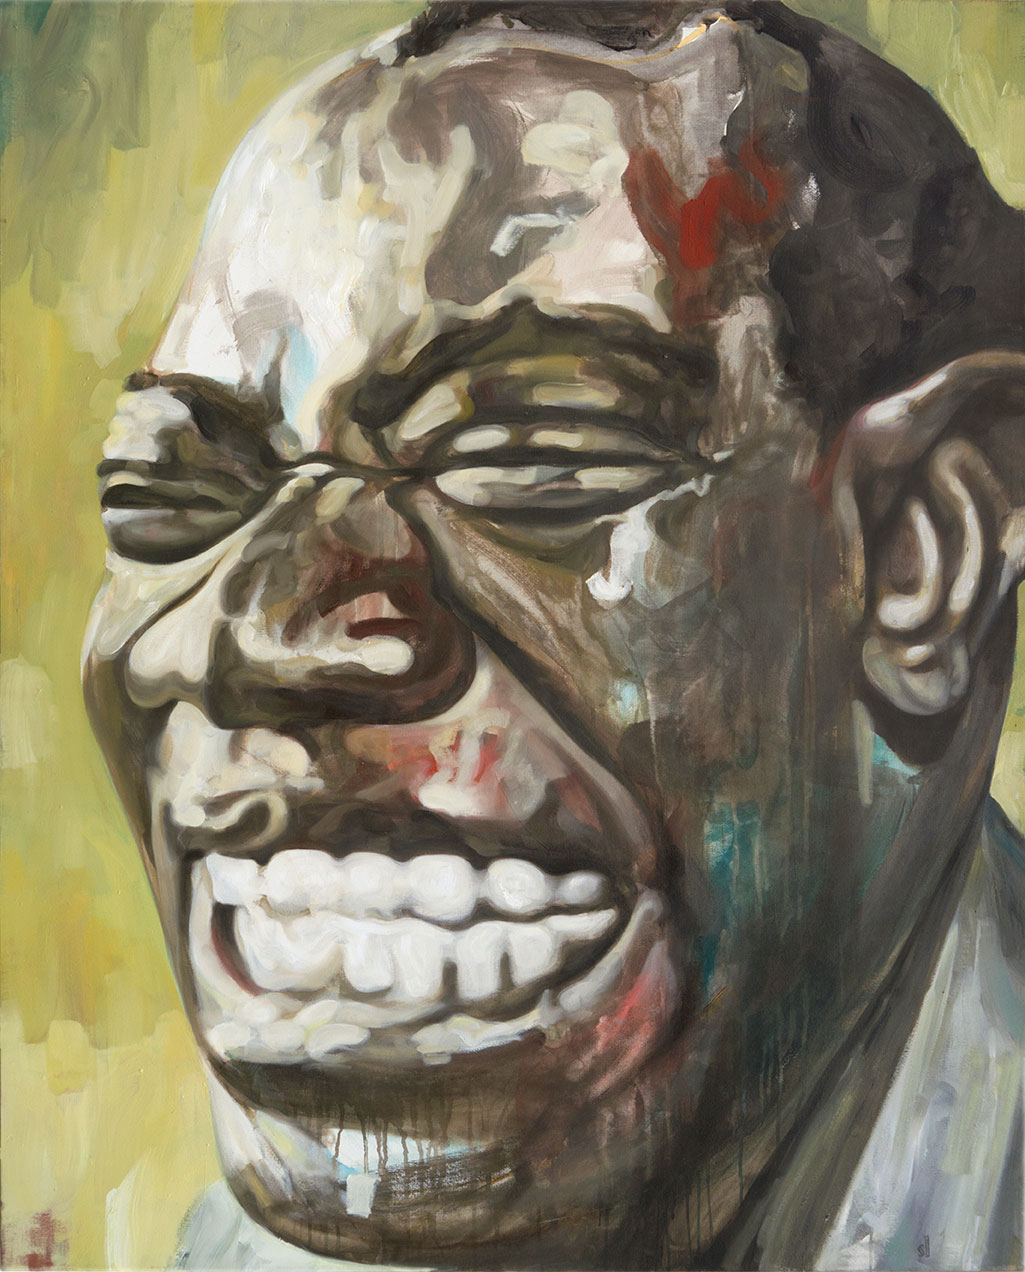 Louis Armstrong (Satchmo) / Gallery installation